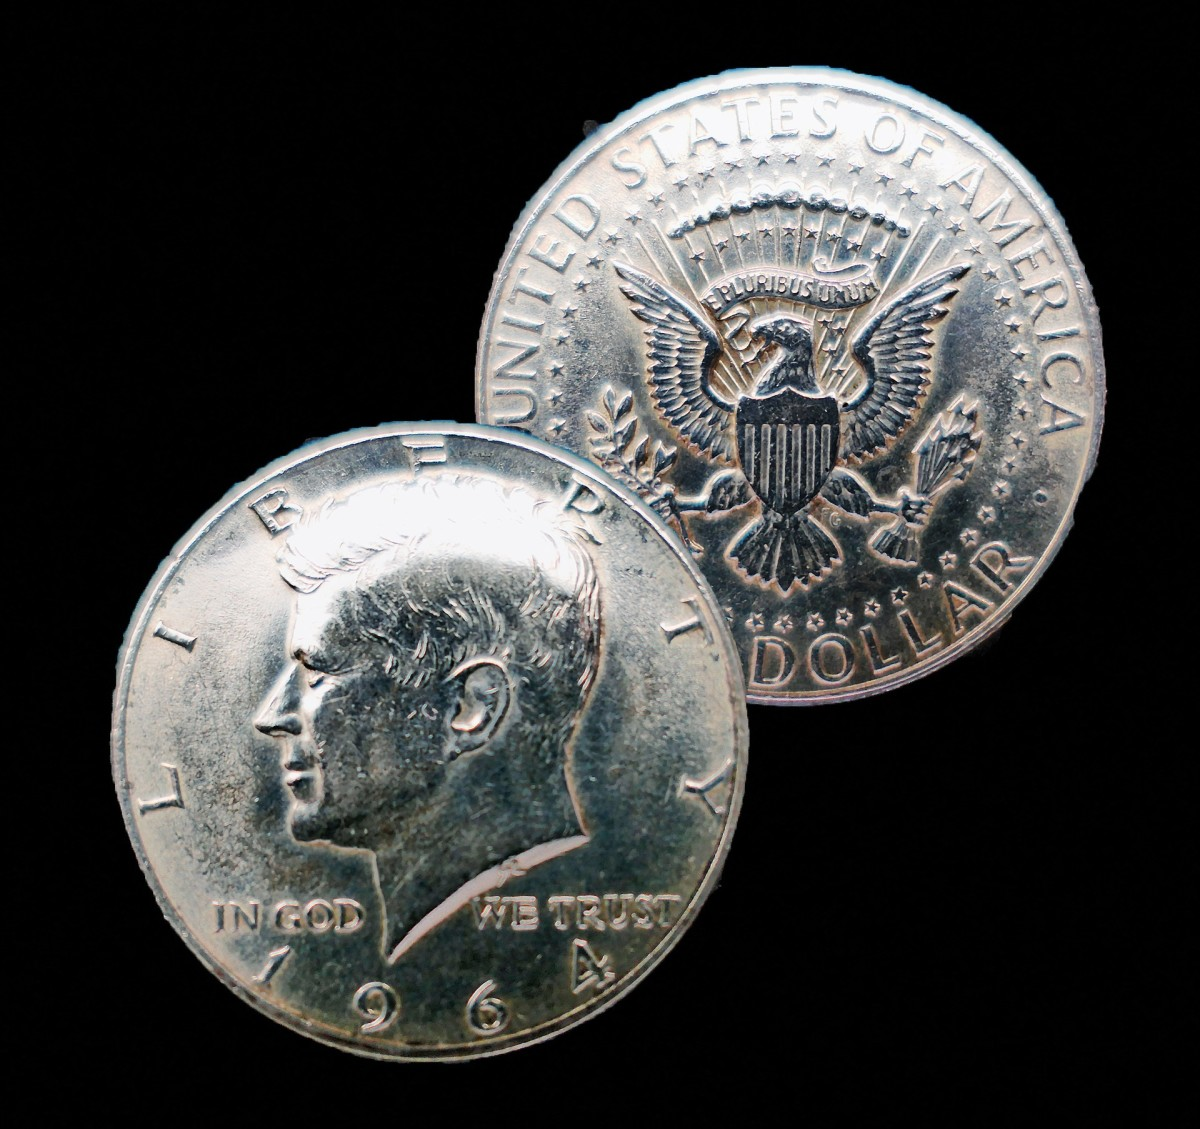 US half dollars made in 1964 and earlier contain 90% silver.